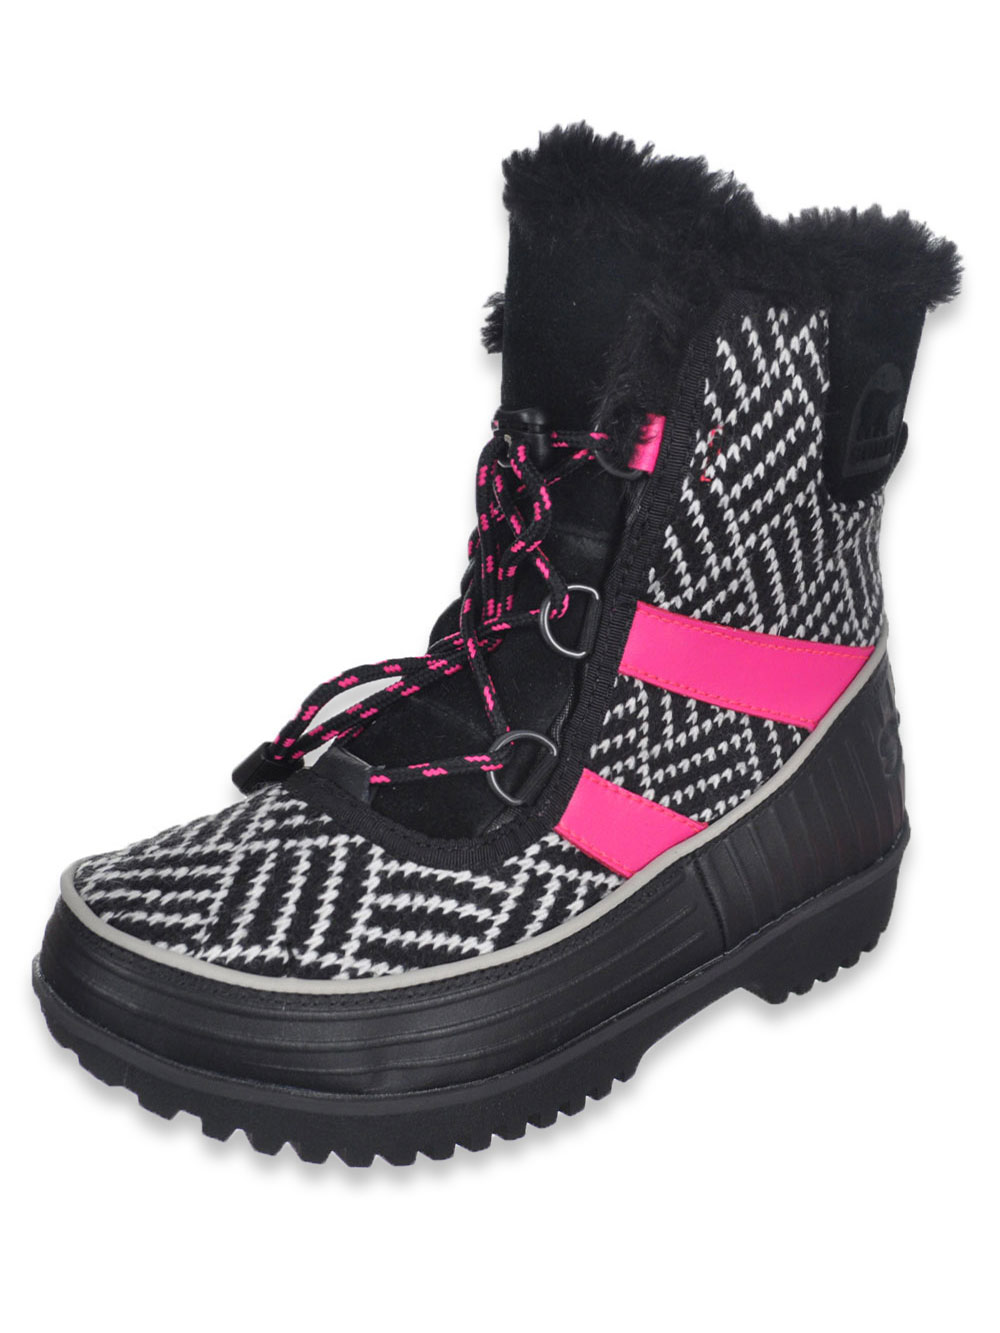 Black and Pink Boots